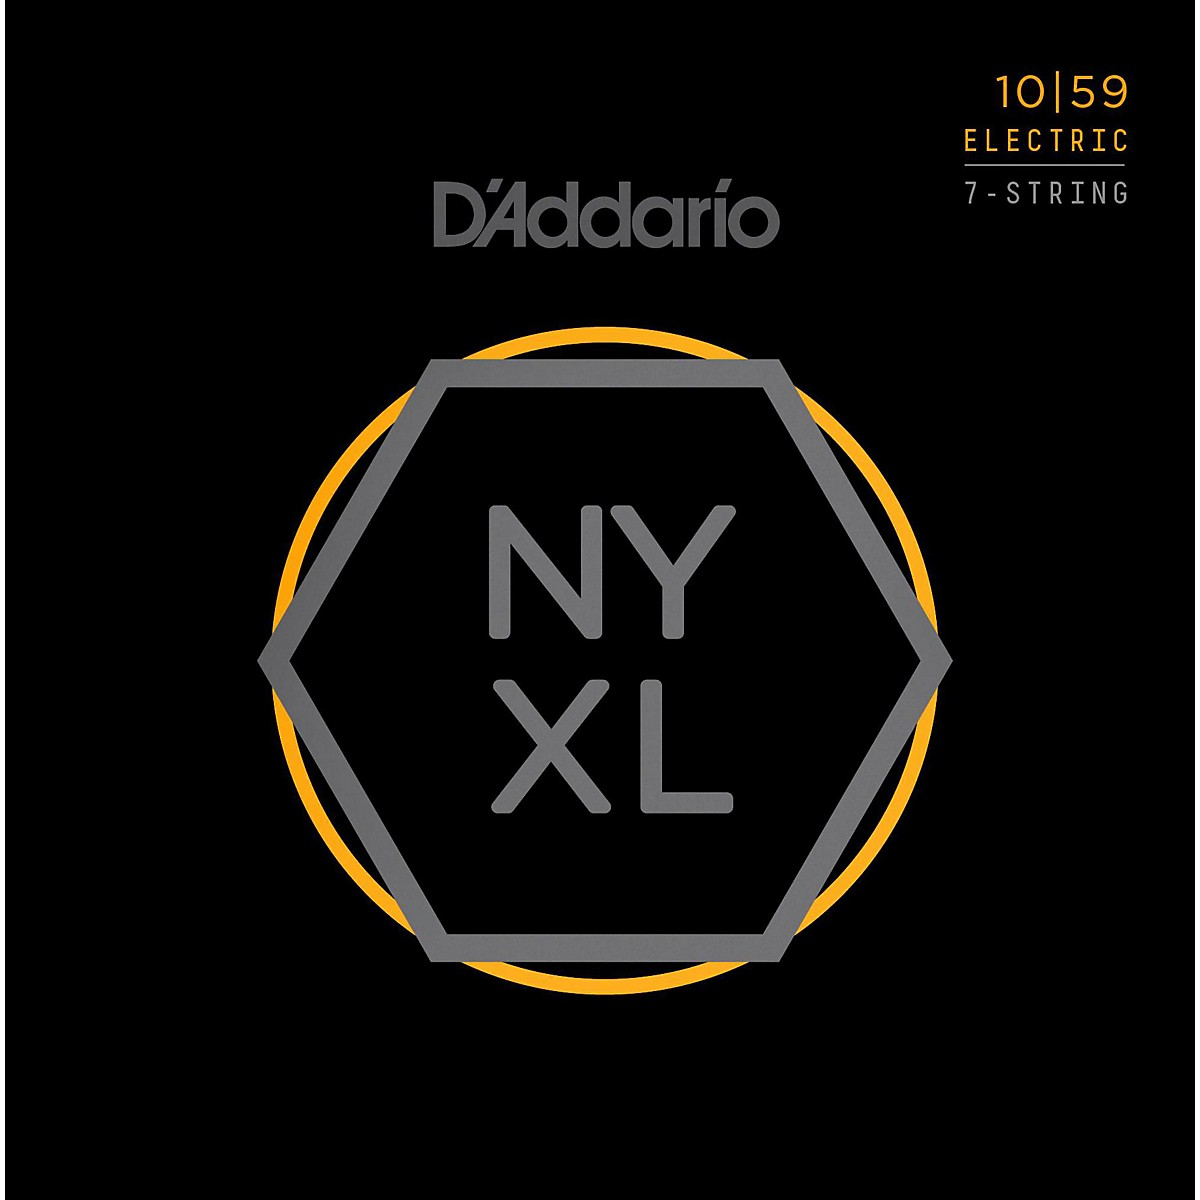 D'Addario NYXL1059 7-String Light Nickel Wound Electric Guitar Strings (10-59)